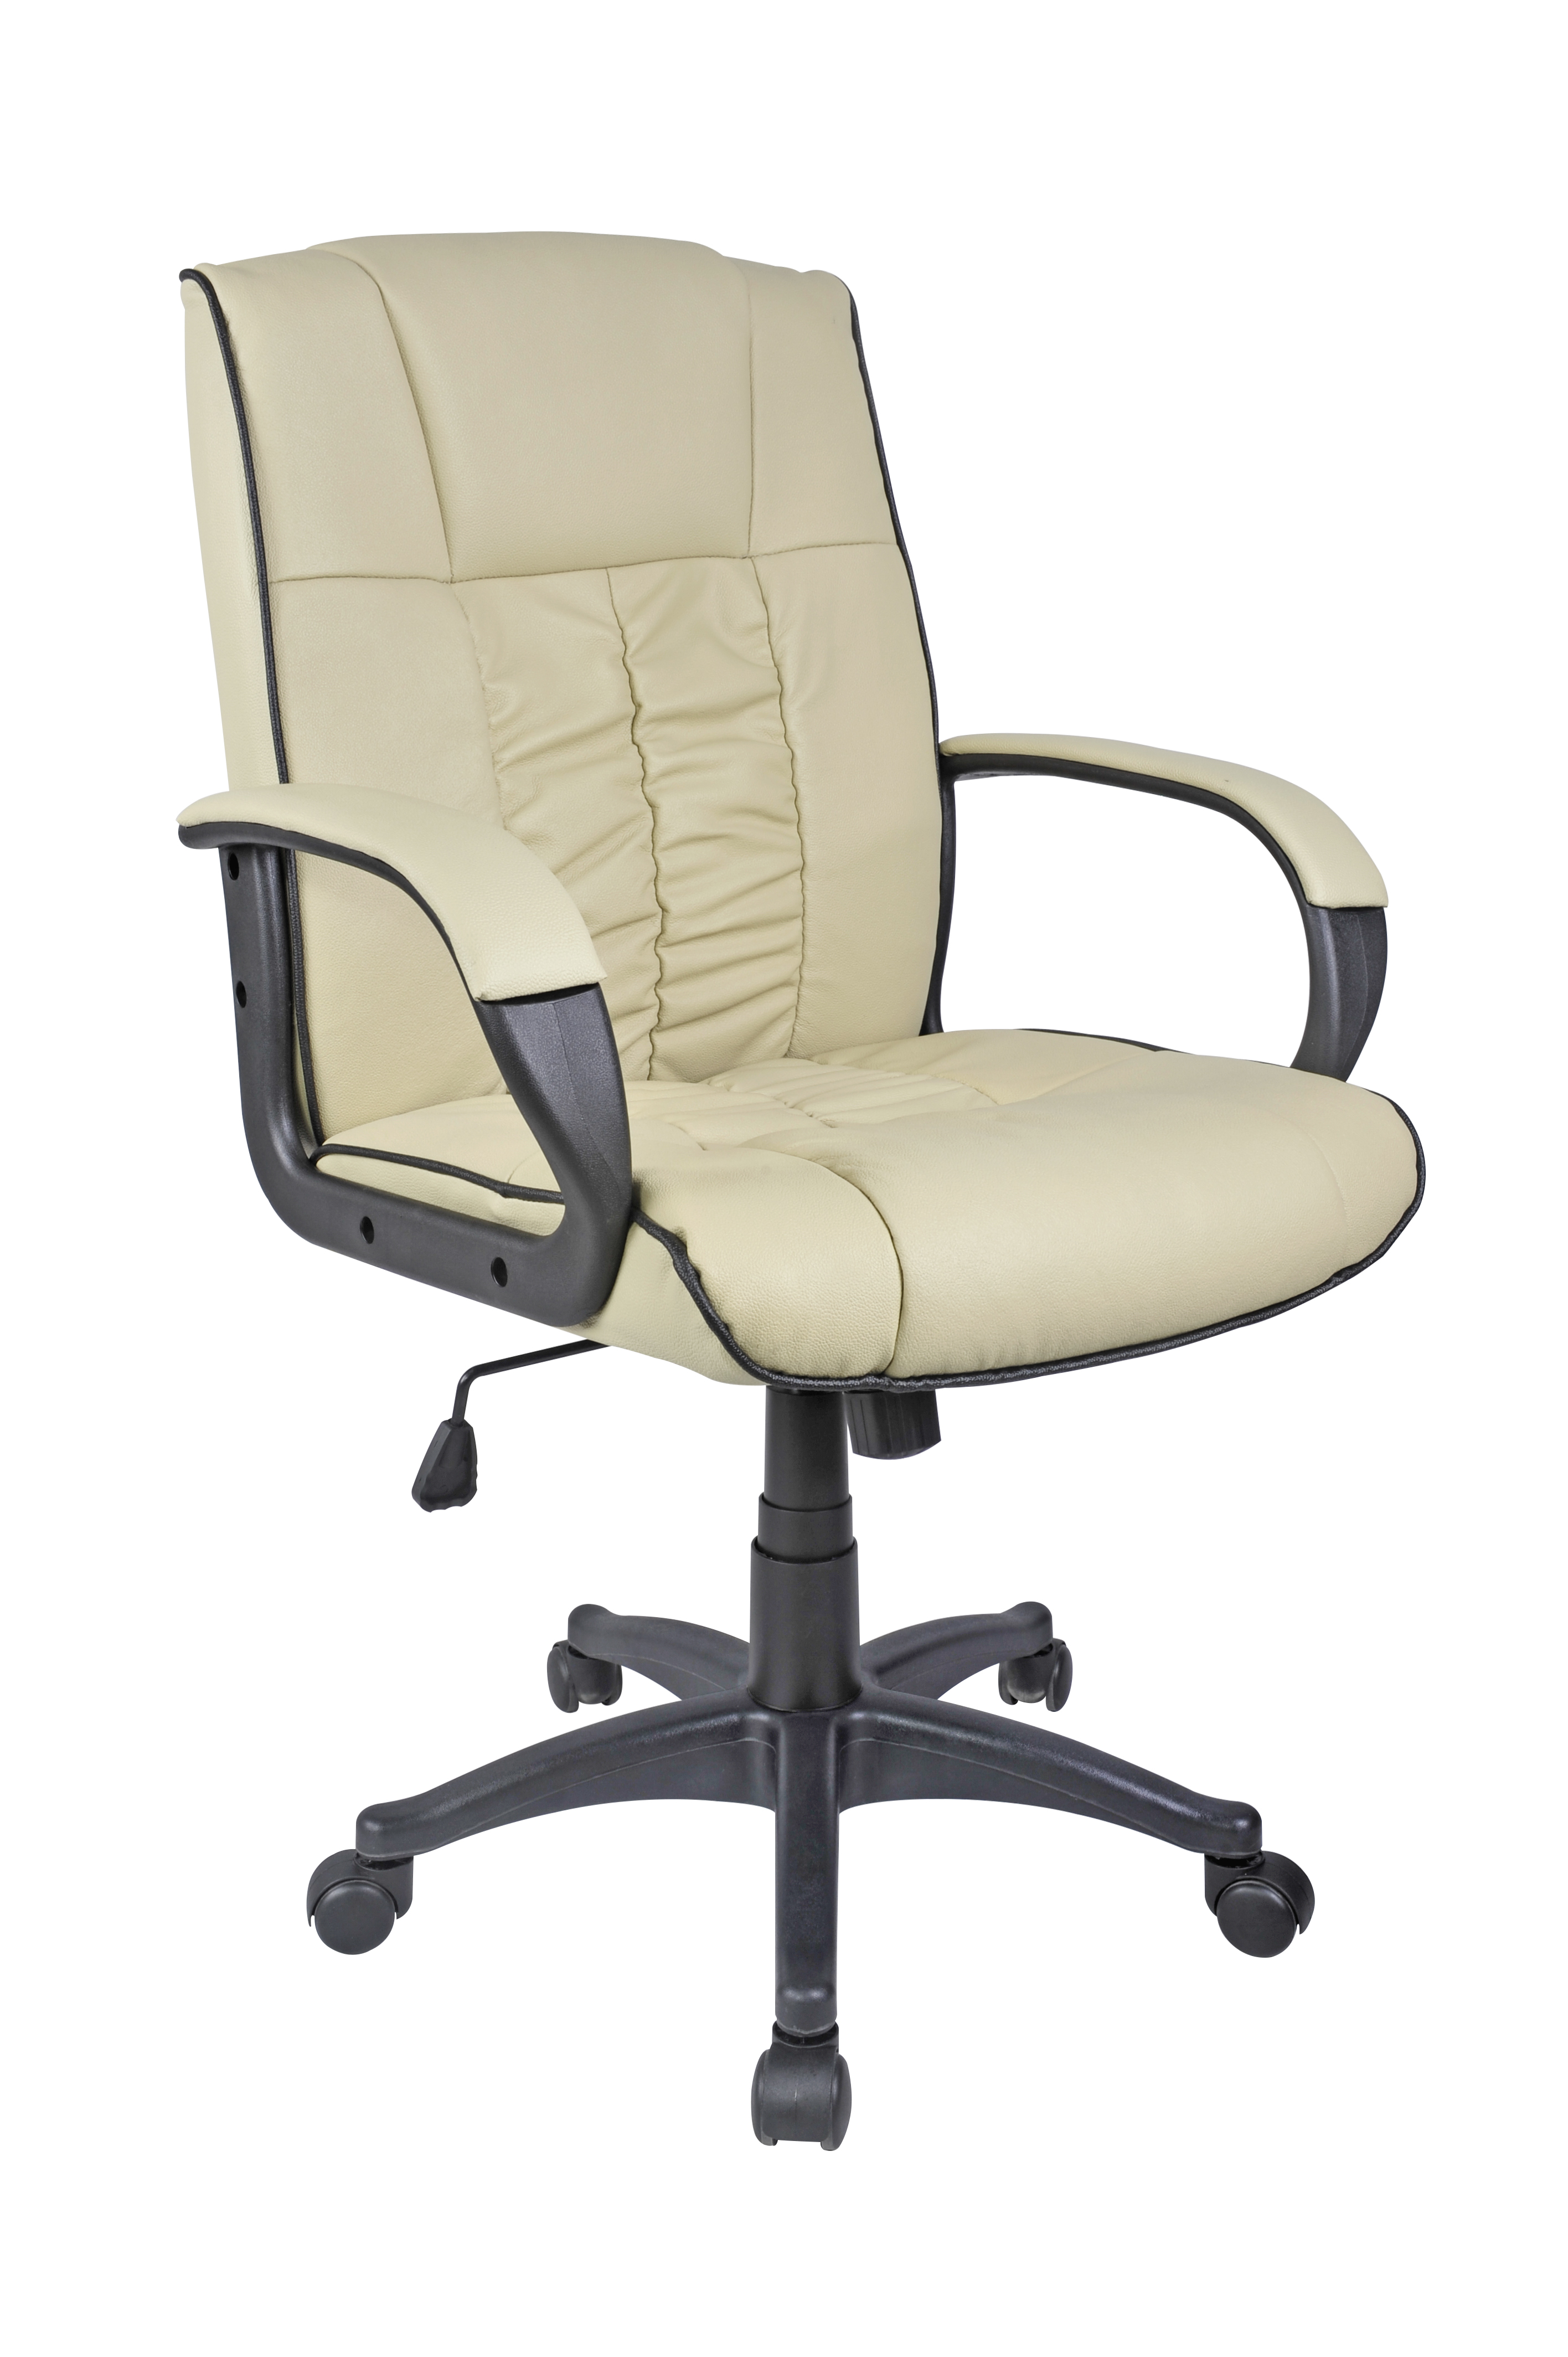 Cow Split Leather High Back fice Chair PC puter Desk